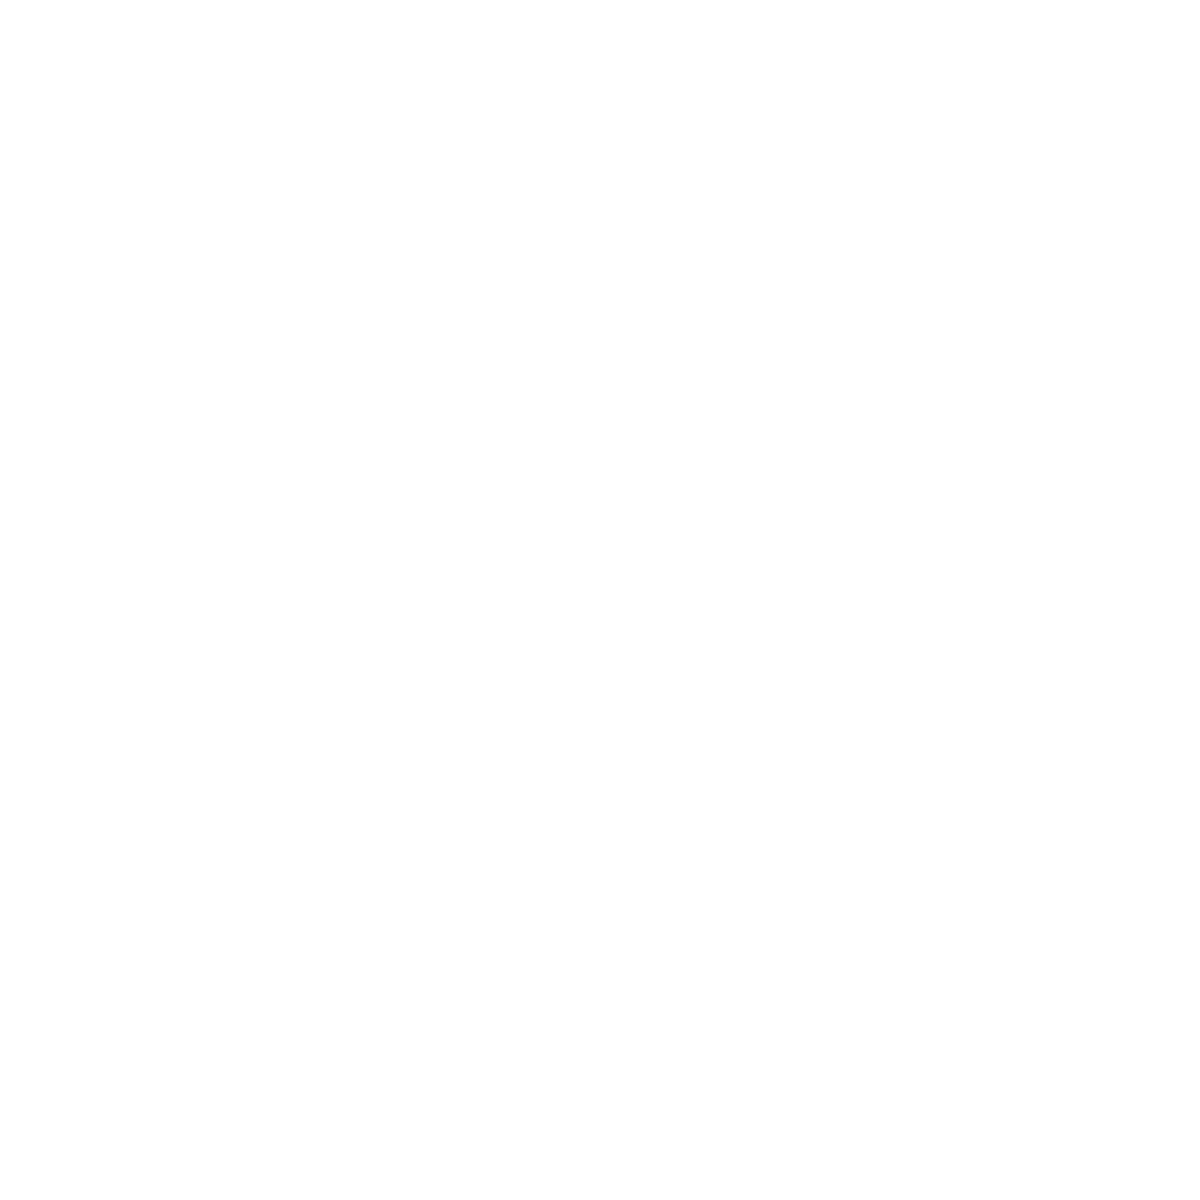 Parke Laurel Apartments: Apartments For Rent In Keizer, OR